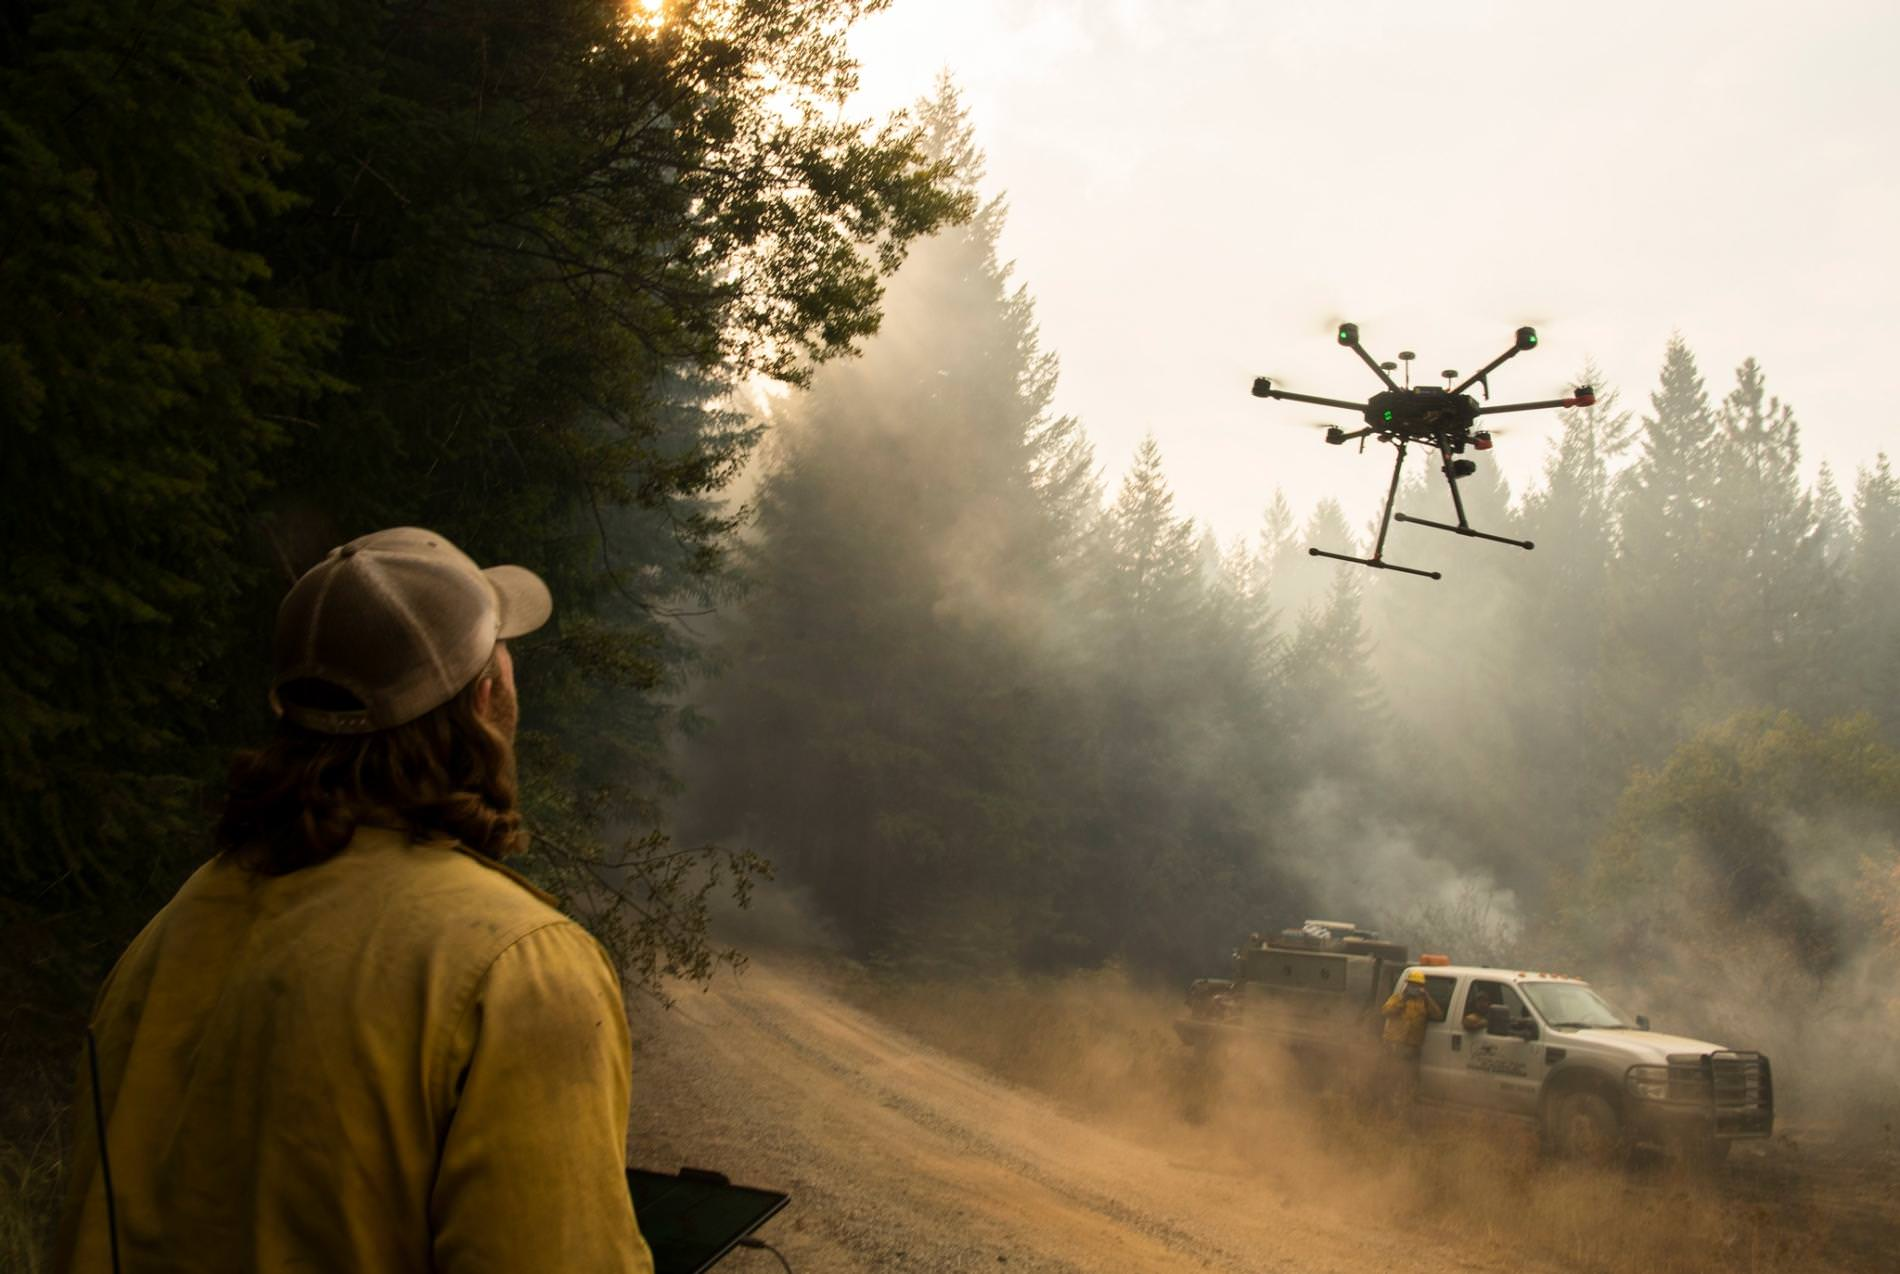 Fireball-dropping drones are the greatest innovation in fire fighting this year